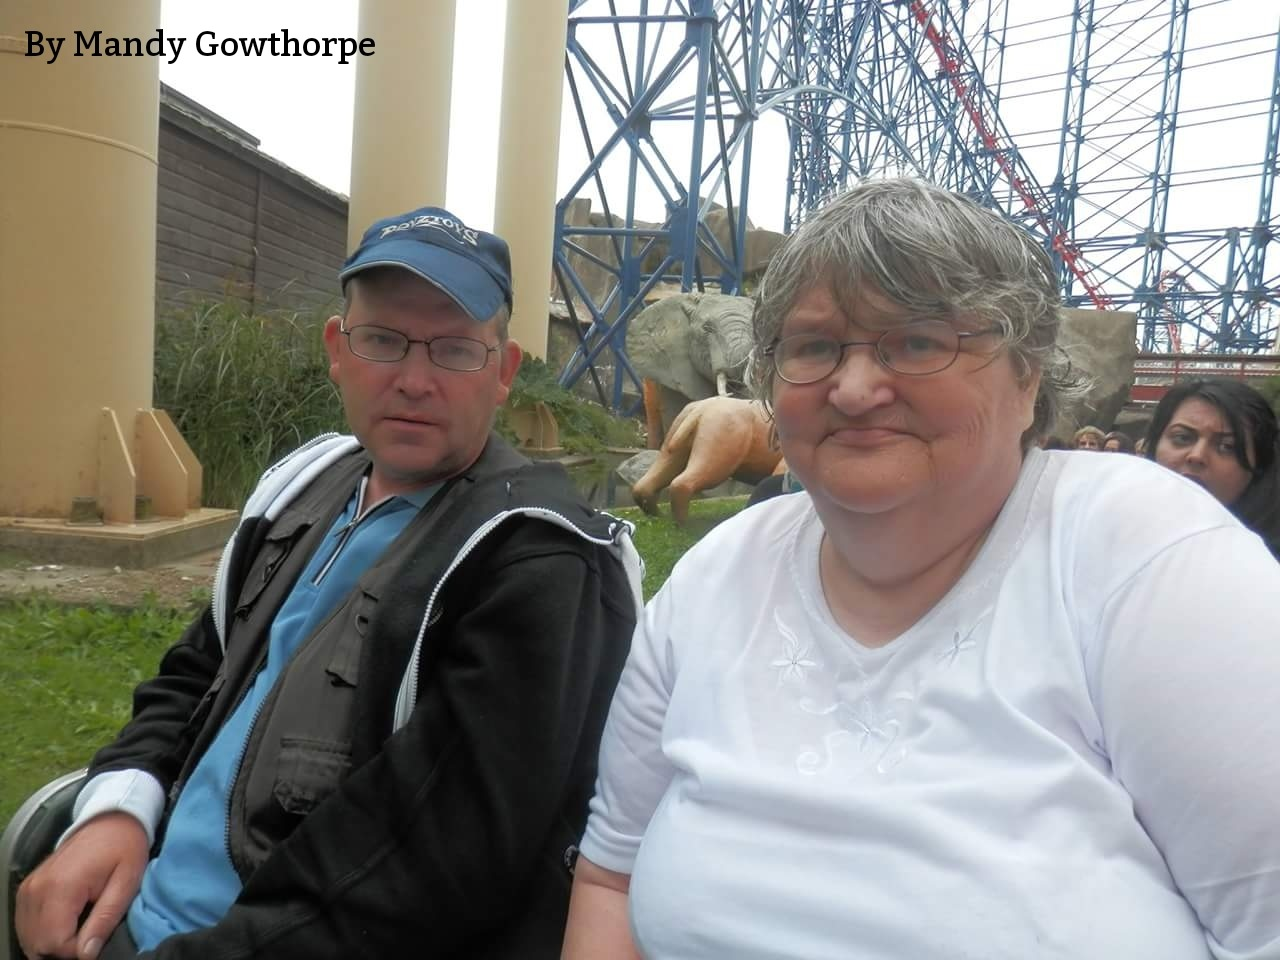 My mum and brother  by mandy gowthorpe